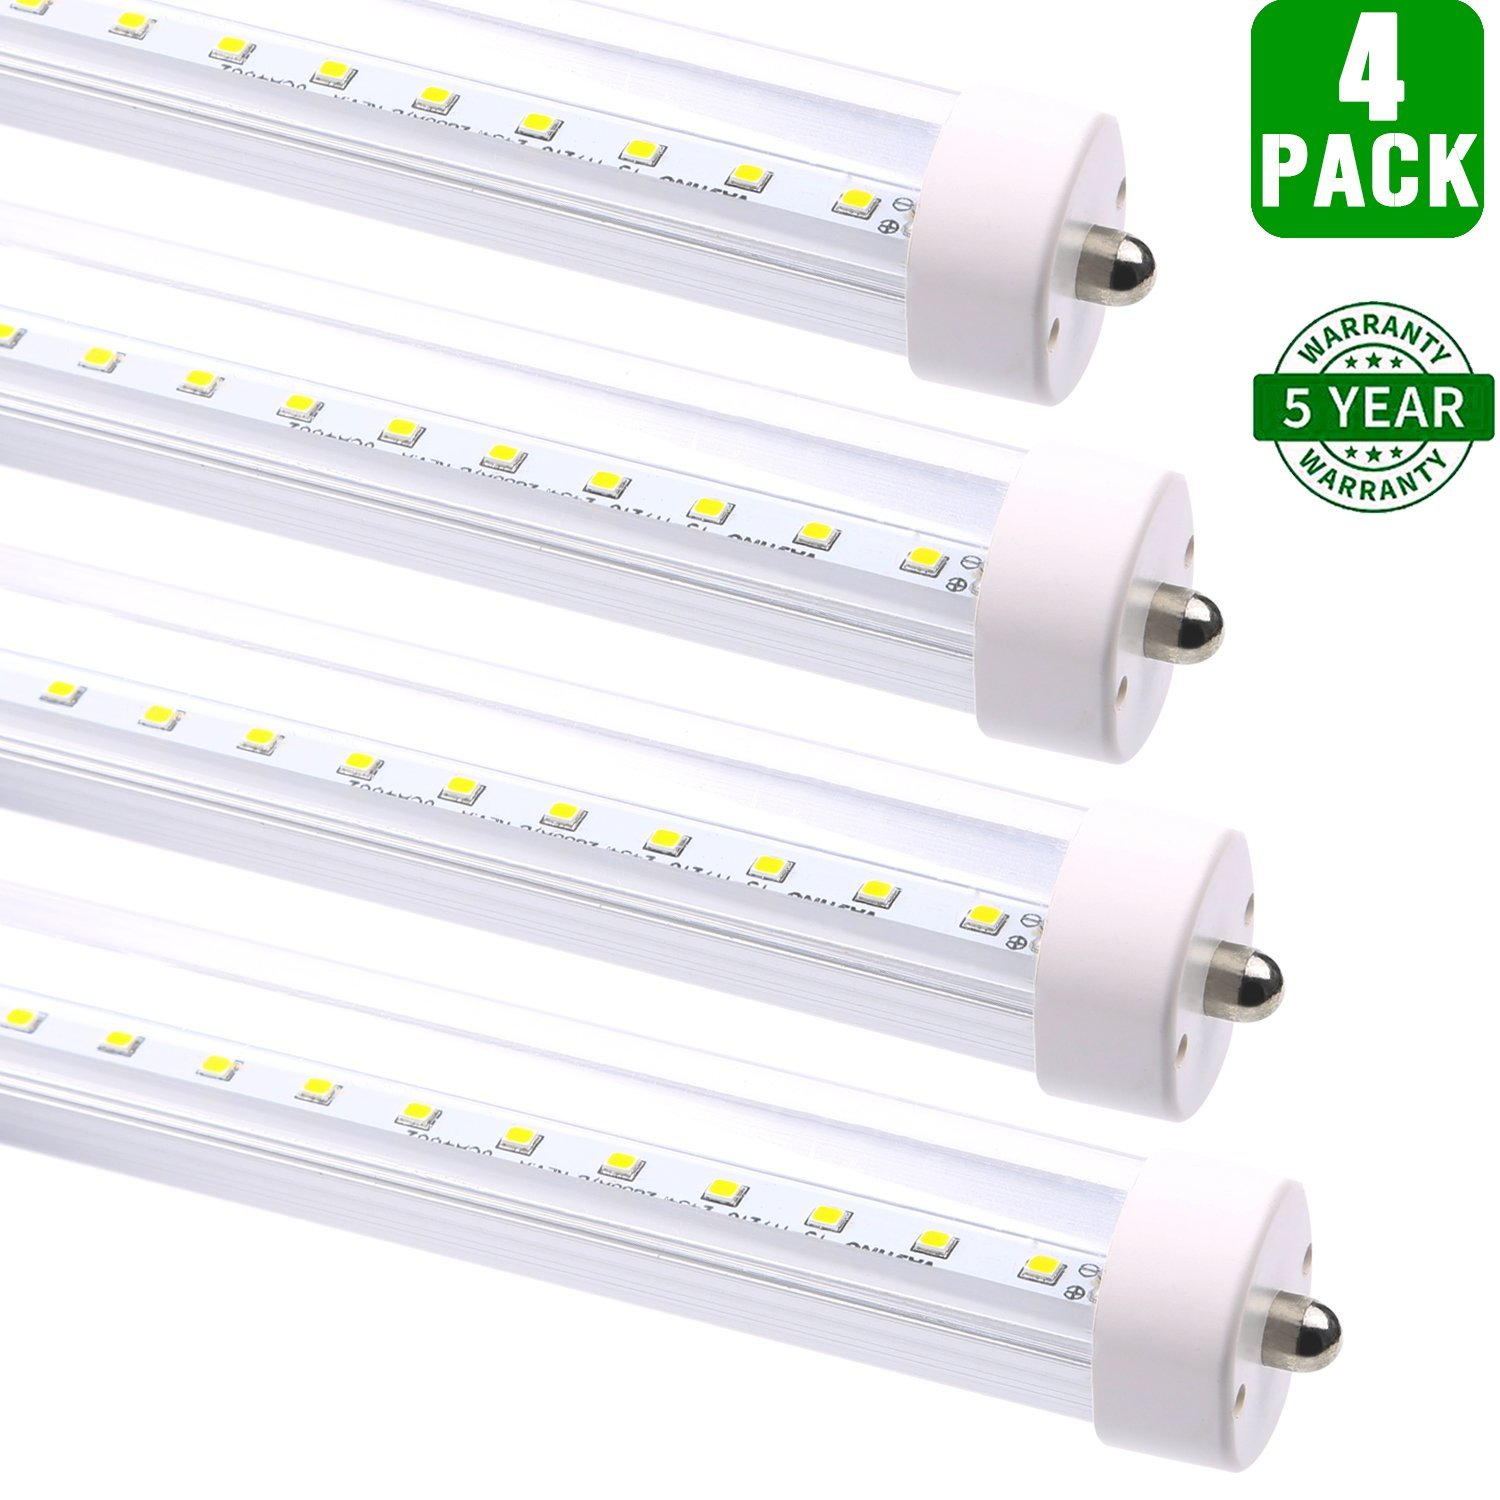 Hykolity 8FT T8 LED Tube Light 36W (80W Equivalent) Shop Lights, 4000LM, Works WITH or without a Ballast, 5000K Daylight White, Single Pin, Fluorescent Tubes Replacement Lighting Fixtures, 4 Pack